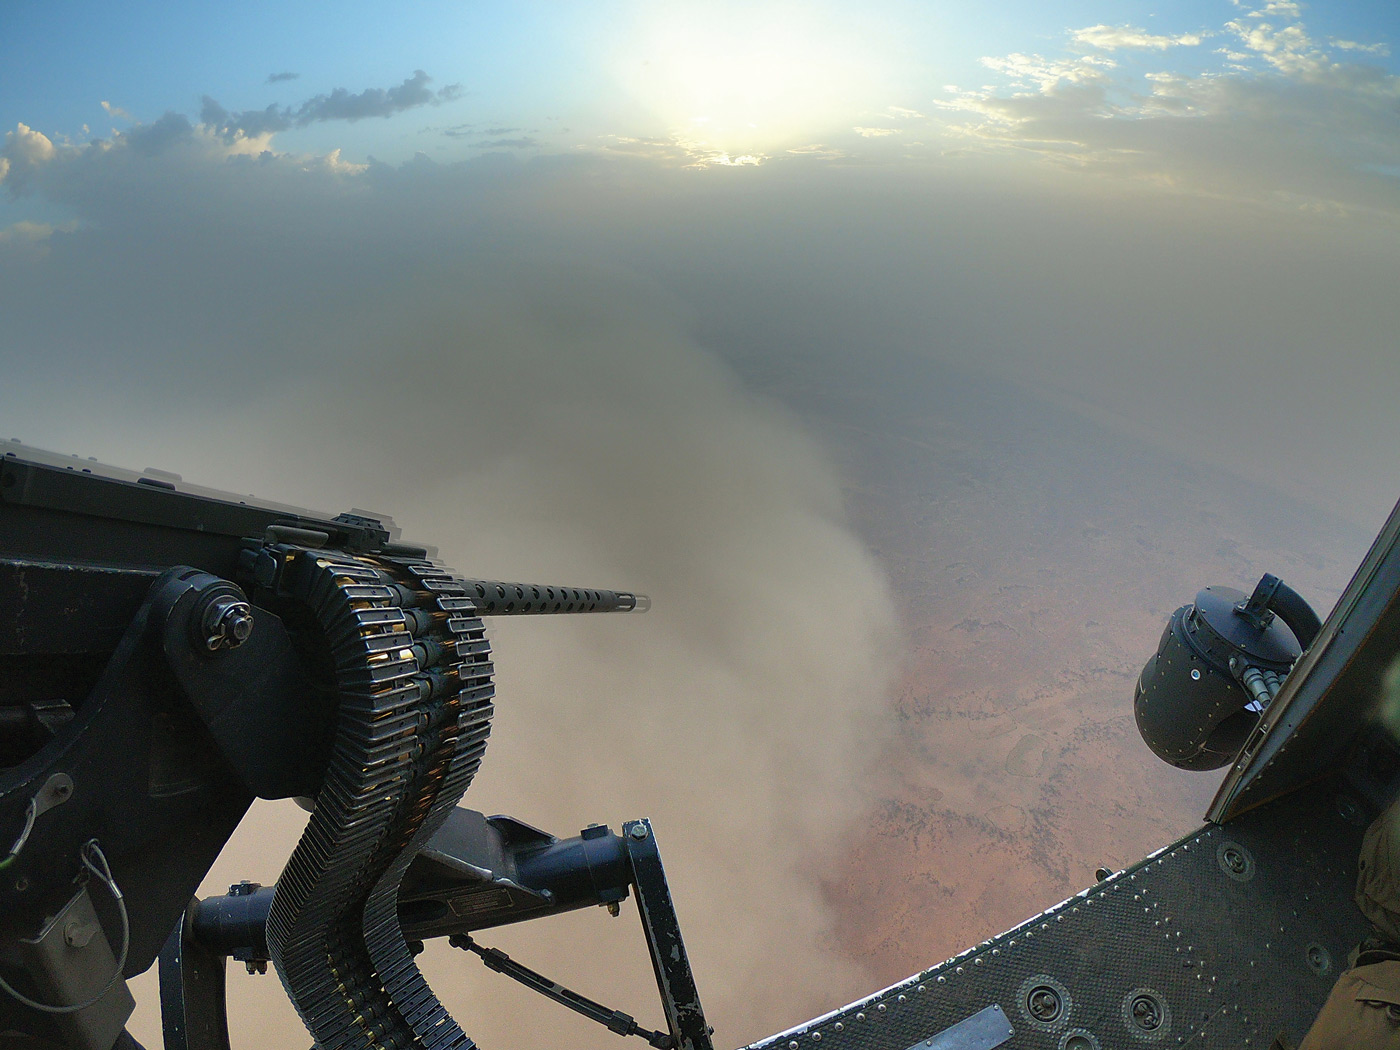 A CH-146 Griffon helicopter flies past a haboob (sandstorm) heading towards Gao, Mali. PHOTO: Corporal François Charest, TM02-2019-0053-0002